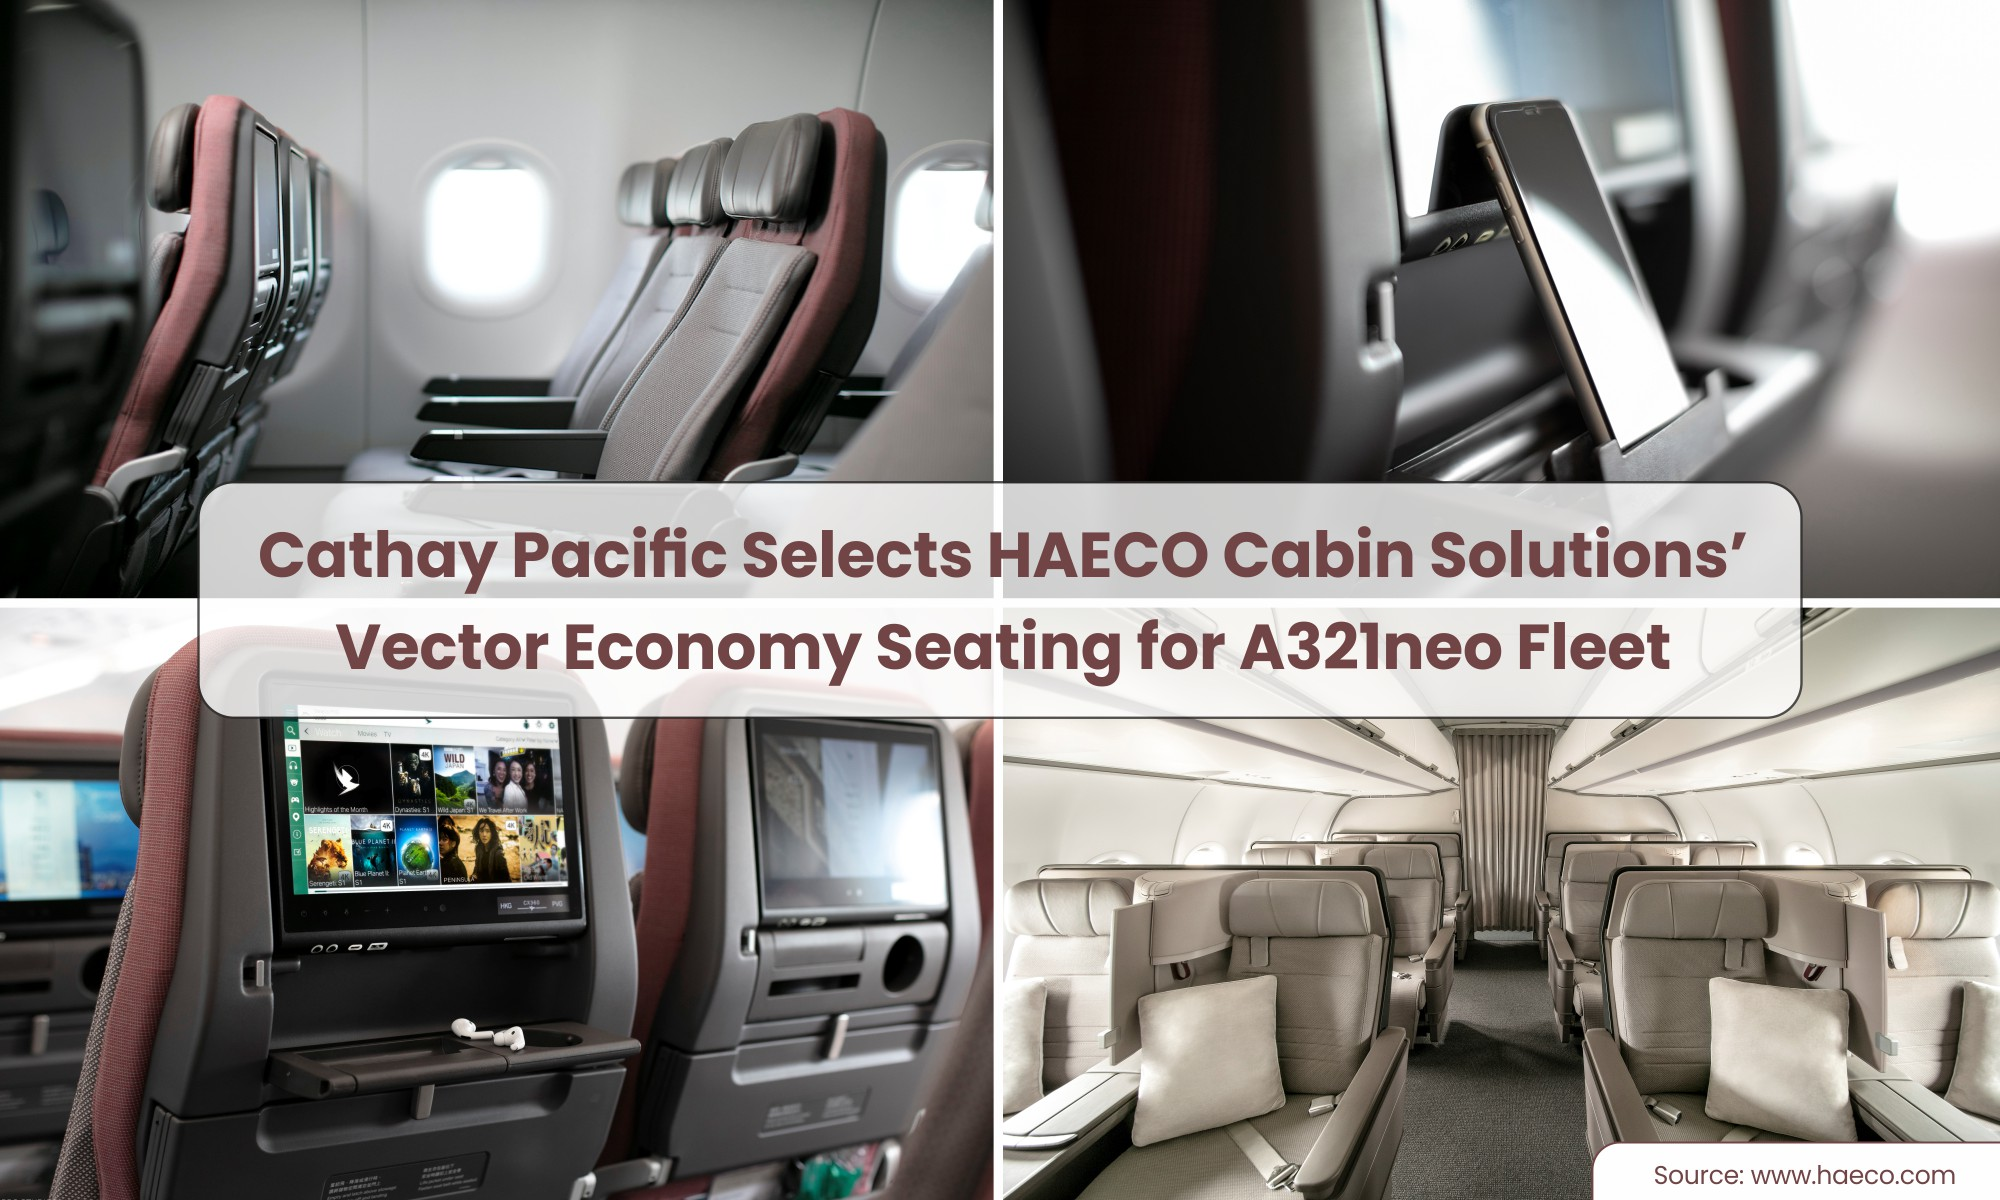 Cathay Pacific Selects HAECO Cabin Solutions' Vector Economy Seating for New Airbus A321neo fleet